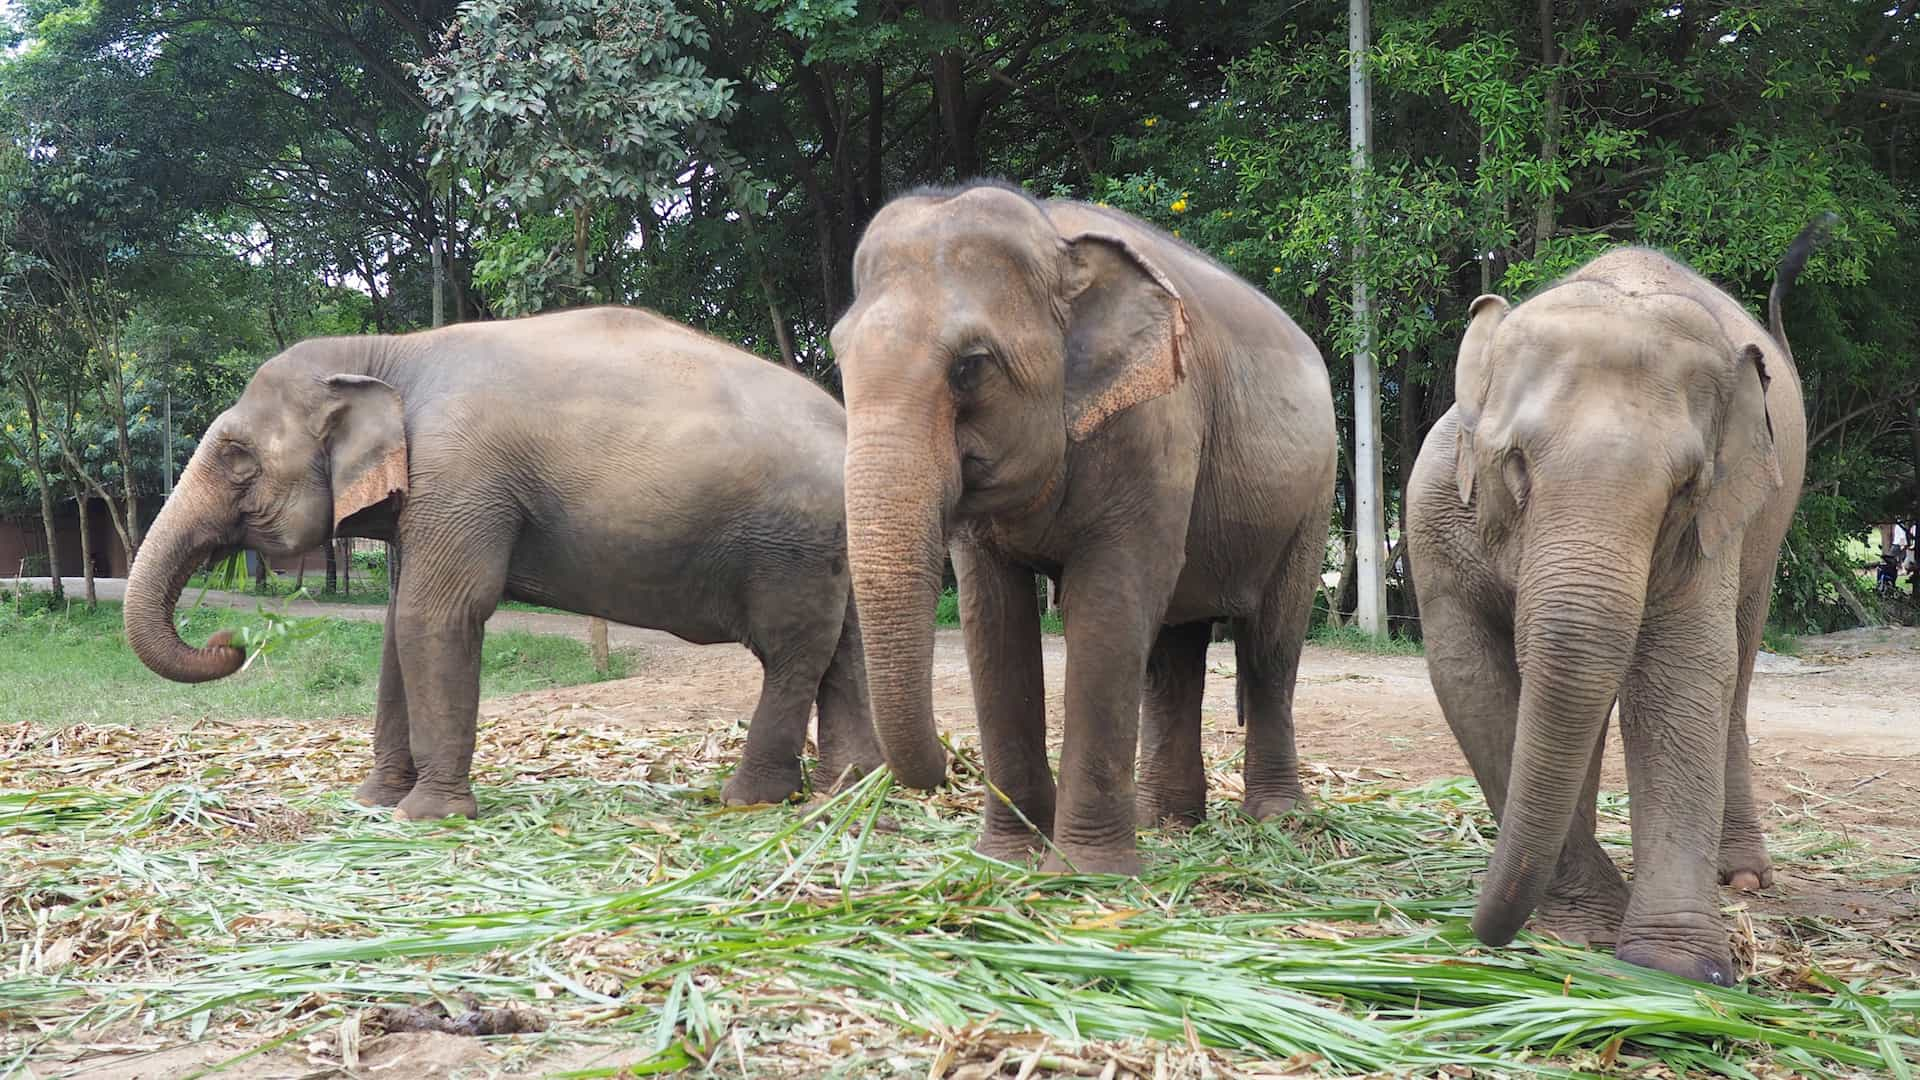 THERE'S STILL HOPE FOR THE ELEPHANTS OF CHIANG MAI